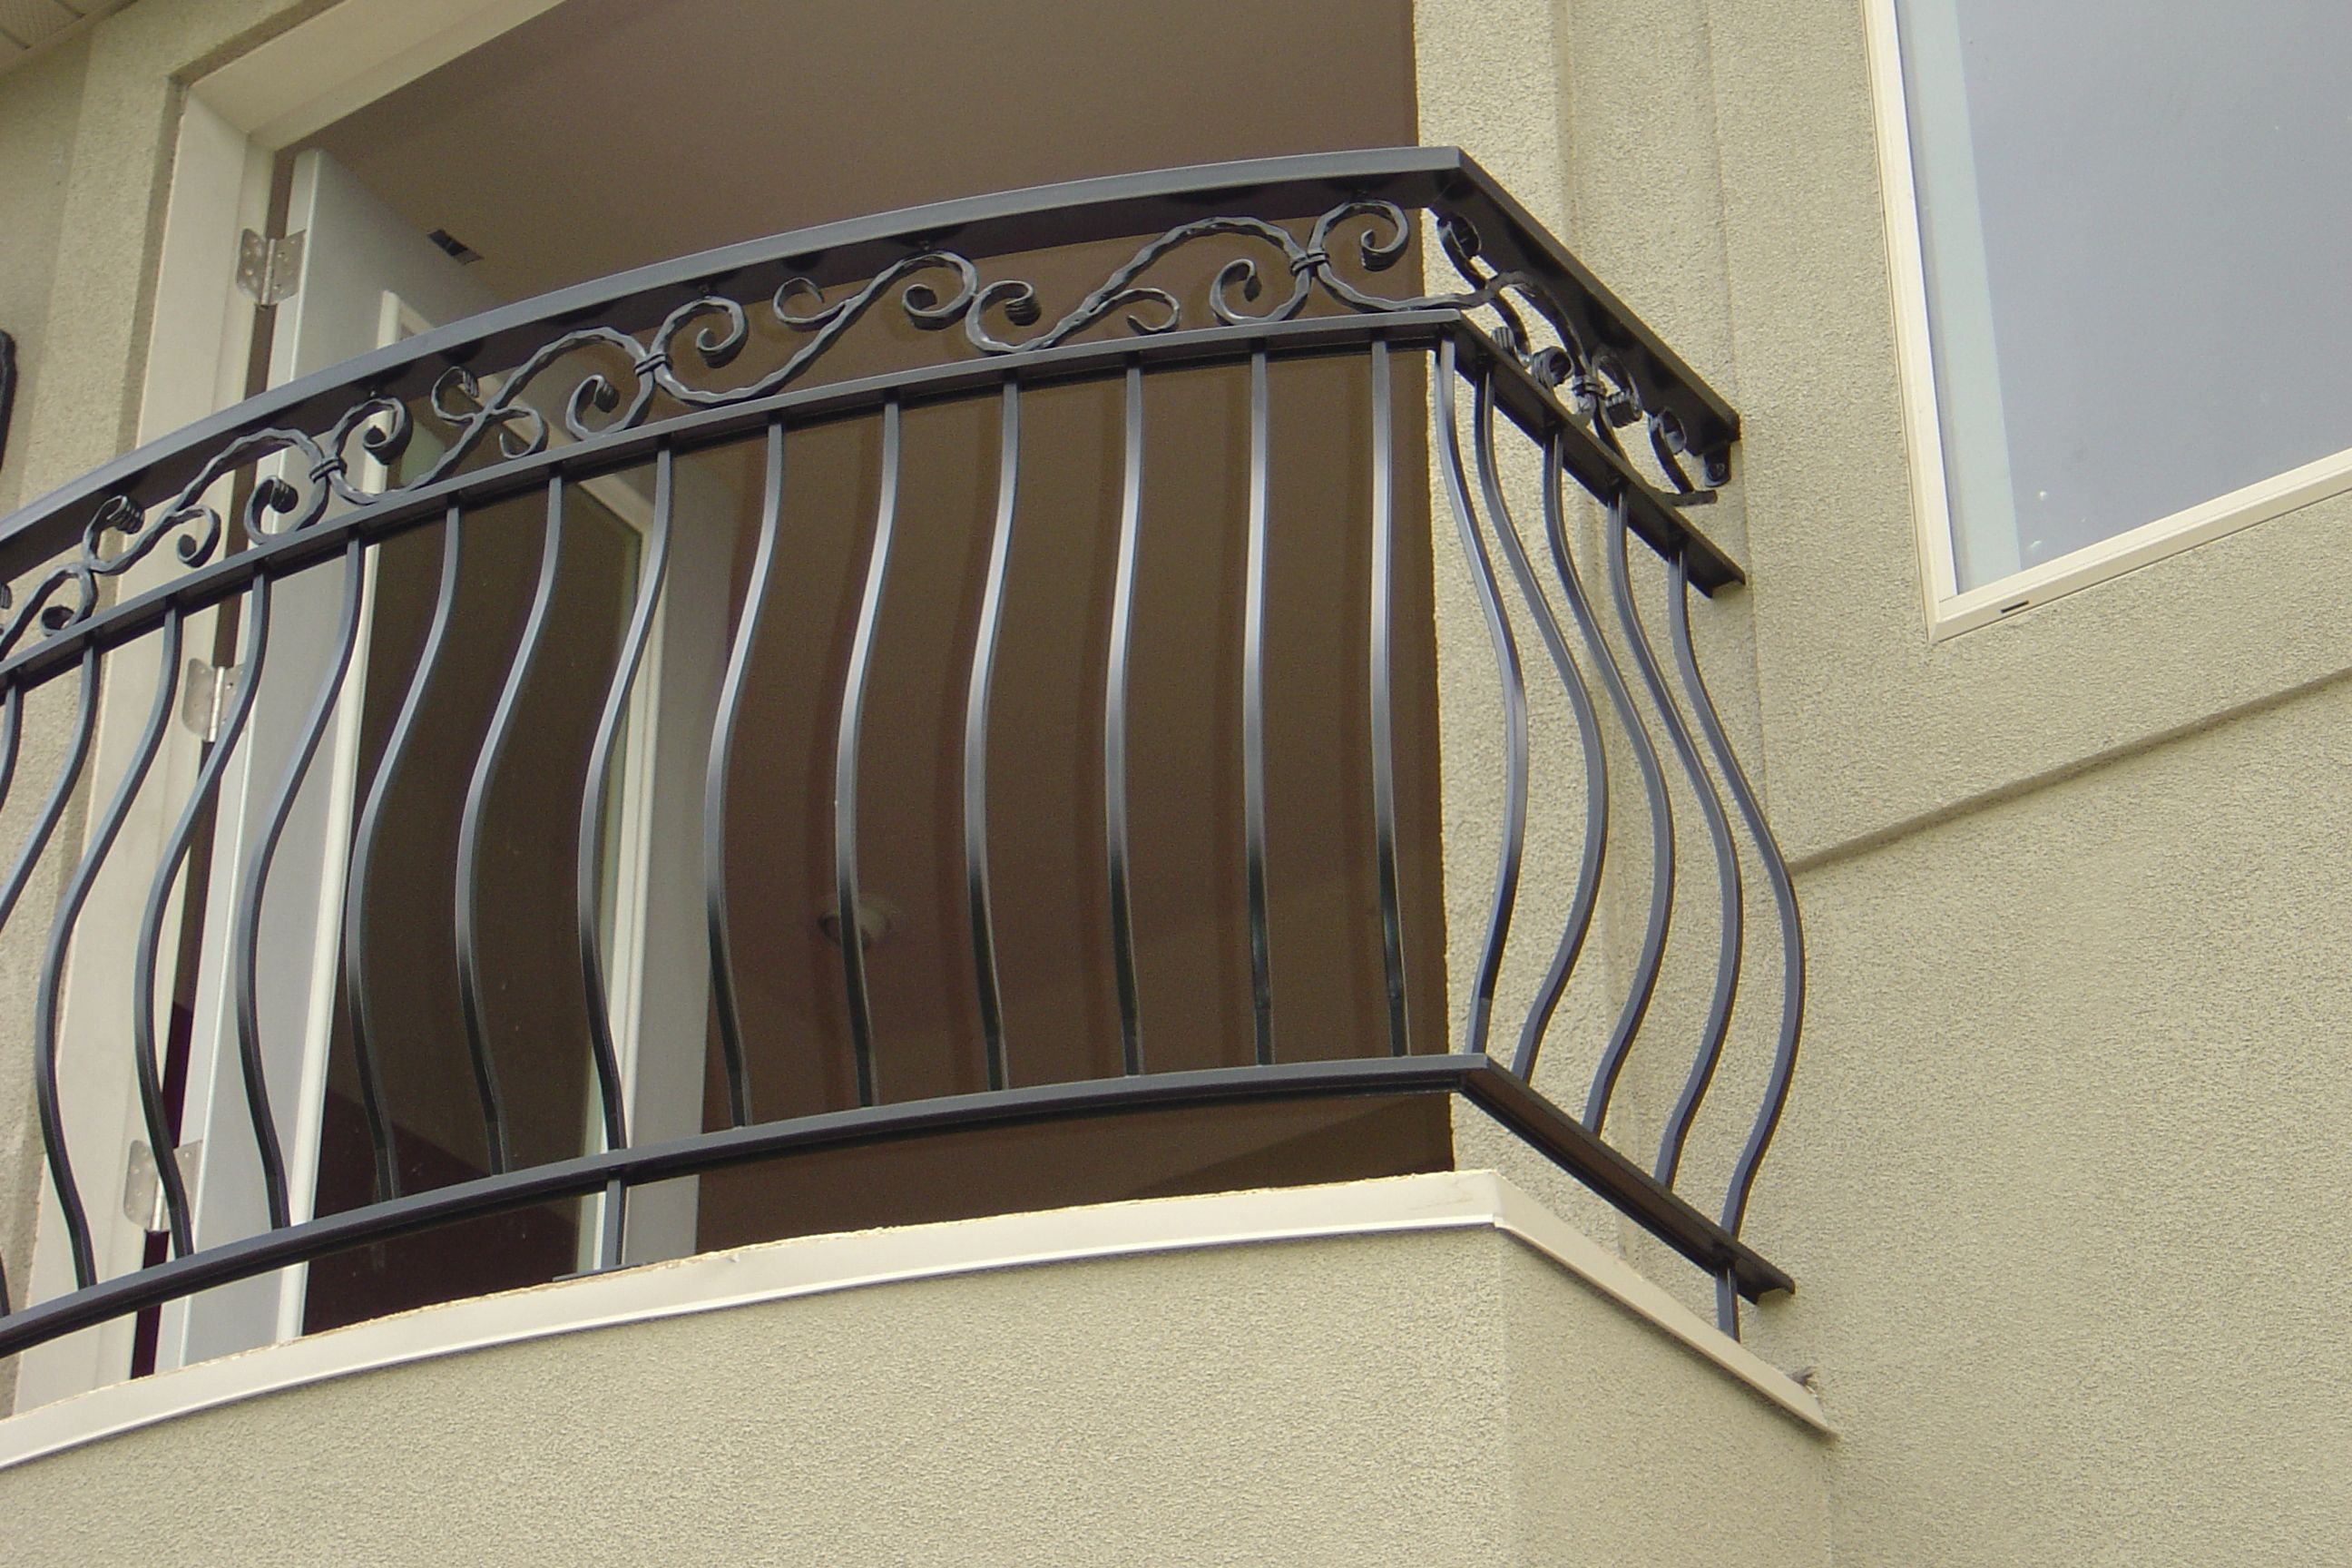 cotati wrought napa picture rod view stair iron railing railings img and handrails porch